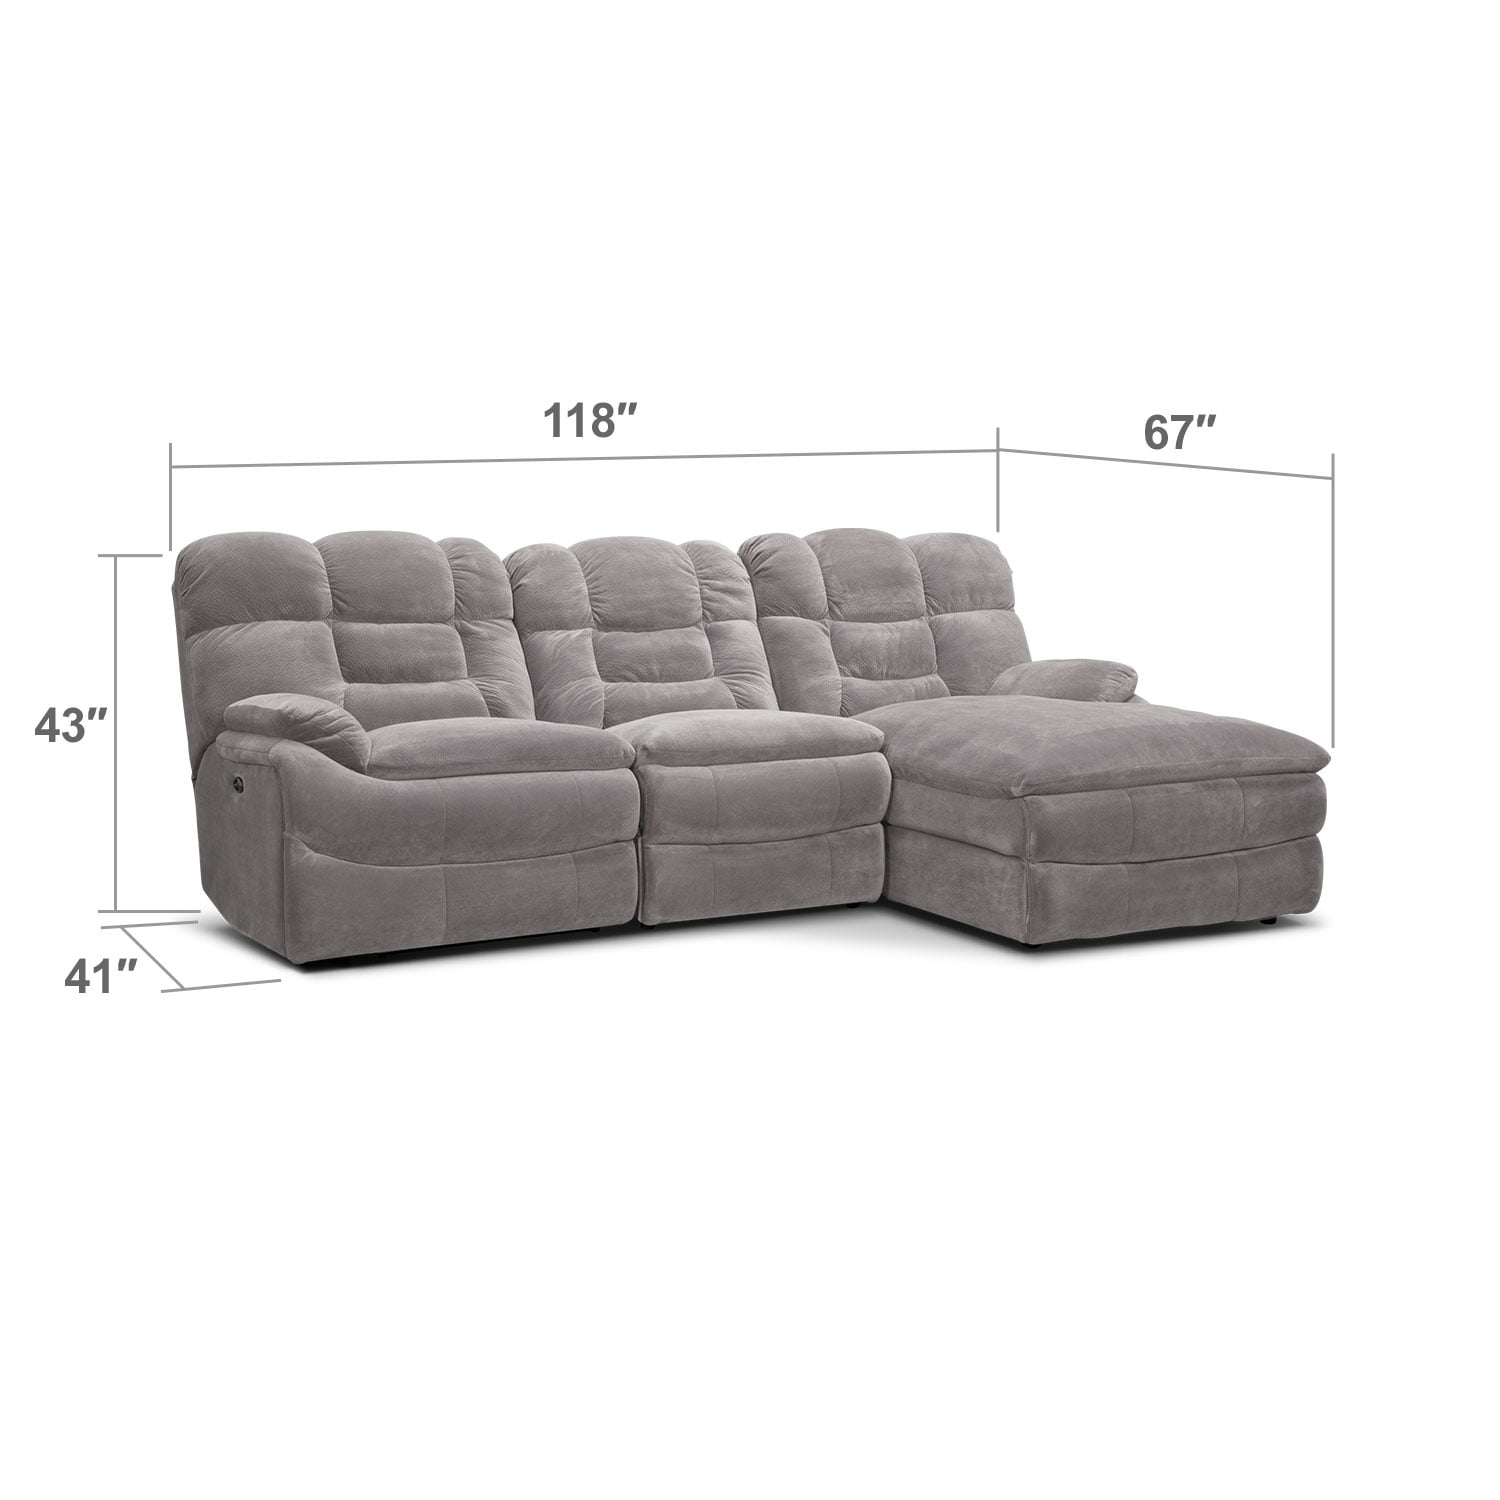 Living Room Furniture - Big Softie II 3 Pc. Power Reclining Sectional